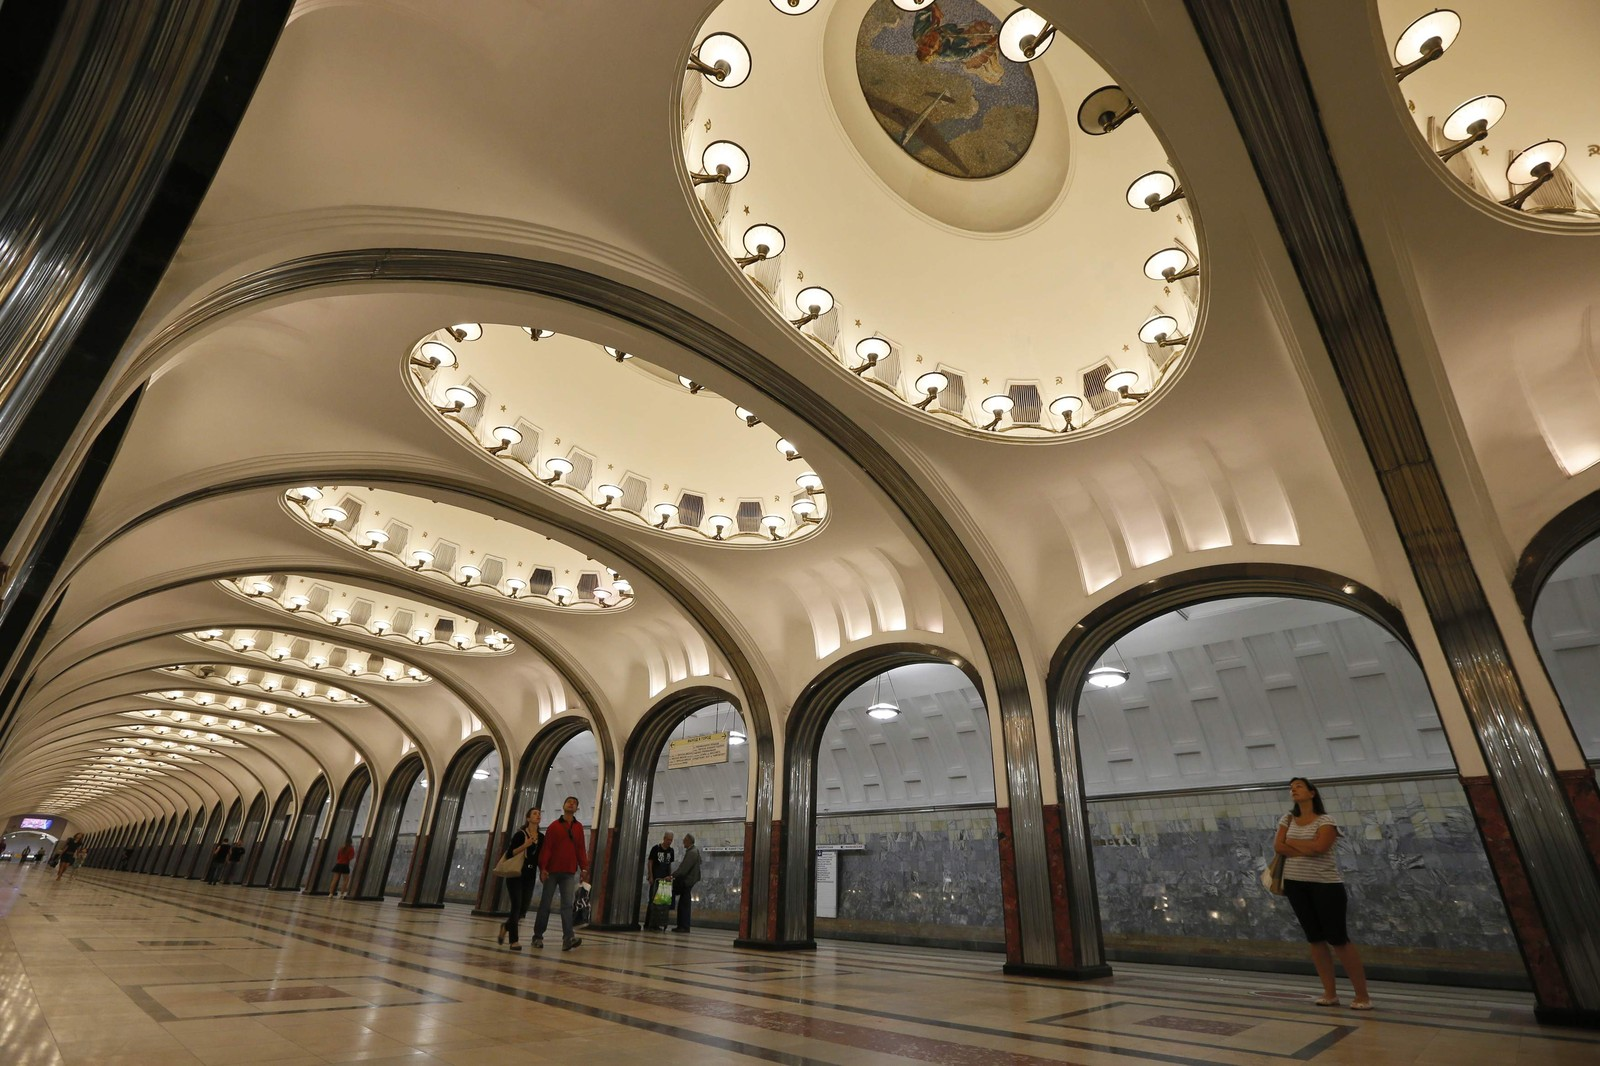 People wait for the train in Mayakovskaya metro station, which was built in 1938, in Moscow August 17, 2013. The Moscow metro was opened in 1935, and carries more passengers daily than the London and New York metro systems combined. REUTERS/Lucy Nicholson (RUSSIA - Tags: SOCIETY TRANSPORT)